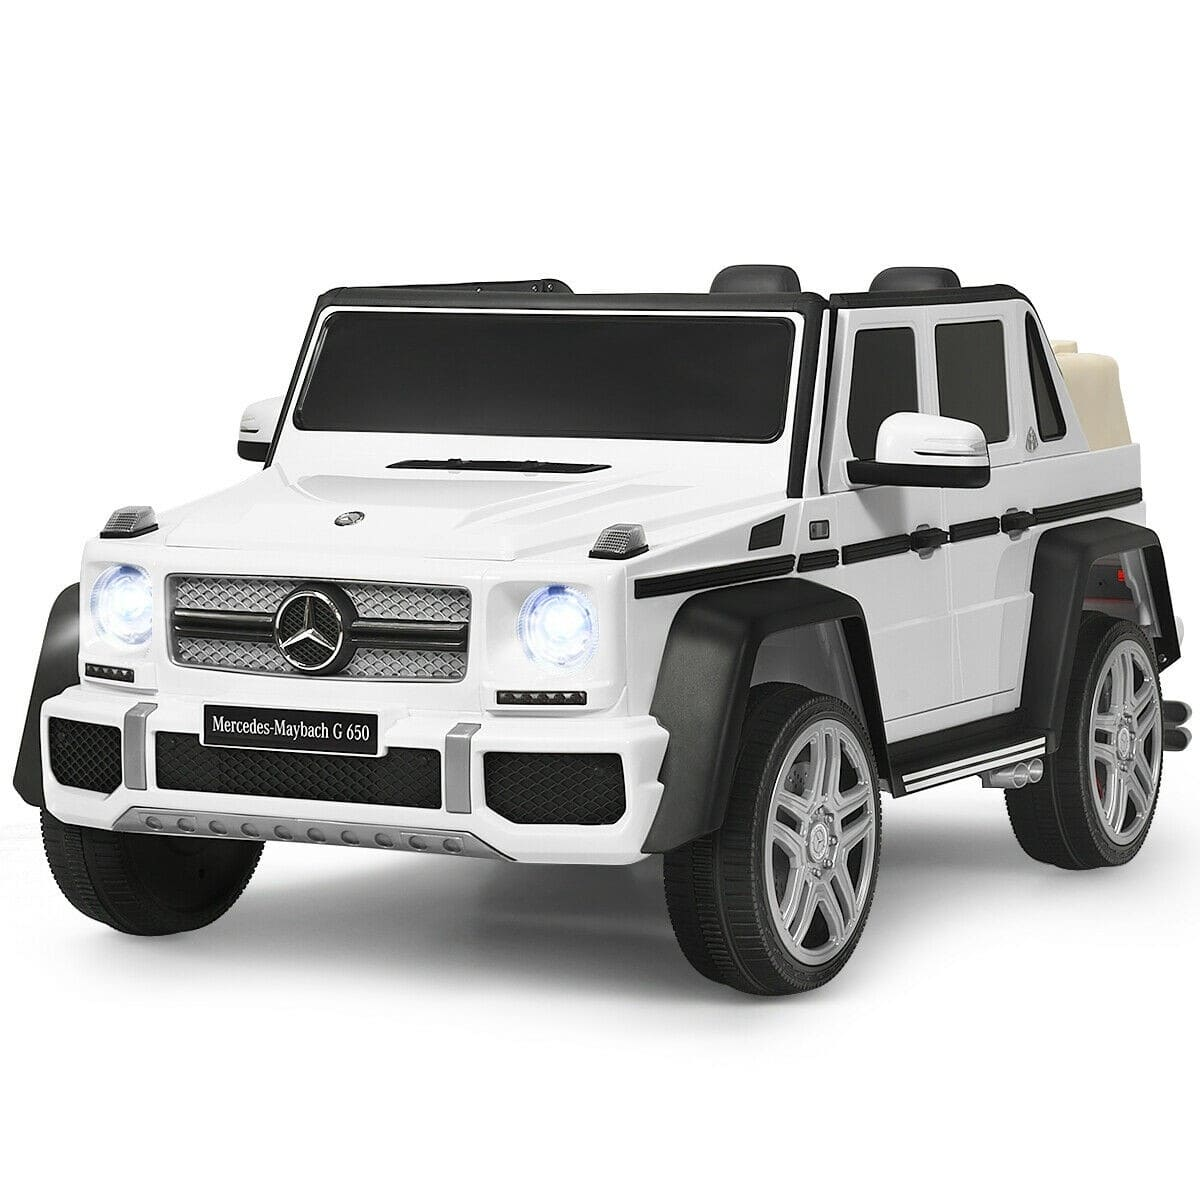 Mercedes Benz Maybach G650 AMG SUV Licensed 12v Kids Electric Ride-on Car - FREE SHIPPING